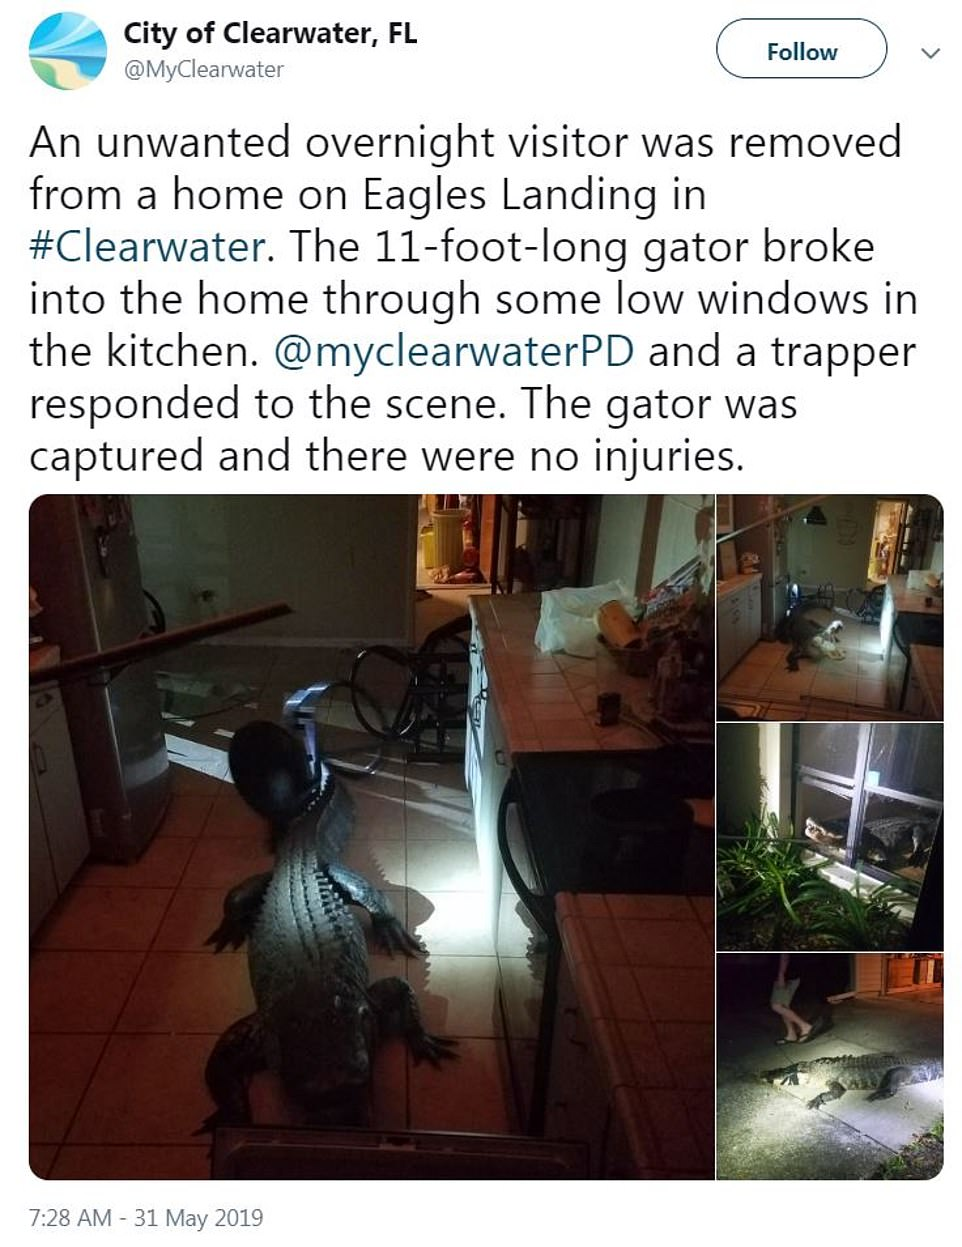 The City of Clearwater shared the incredible photos of the unwanted overnight visitor on social media